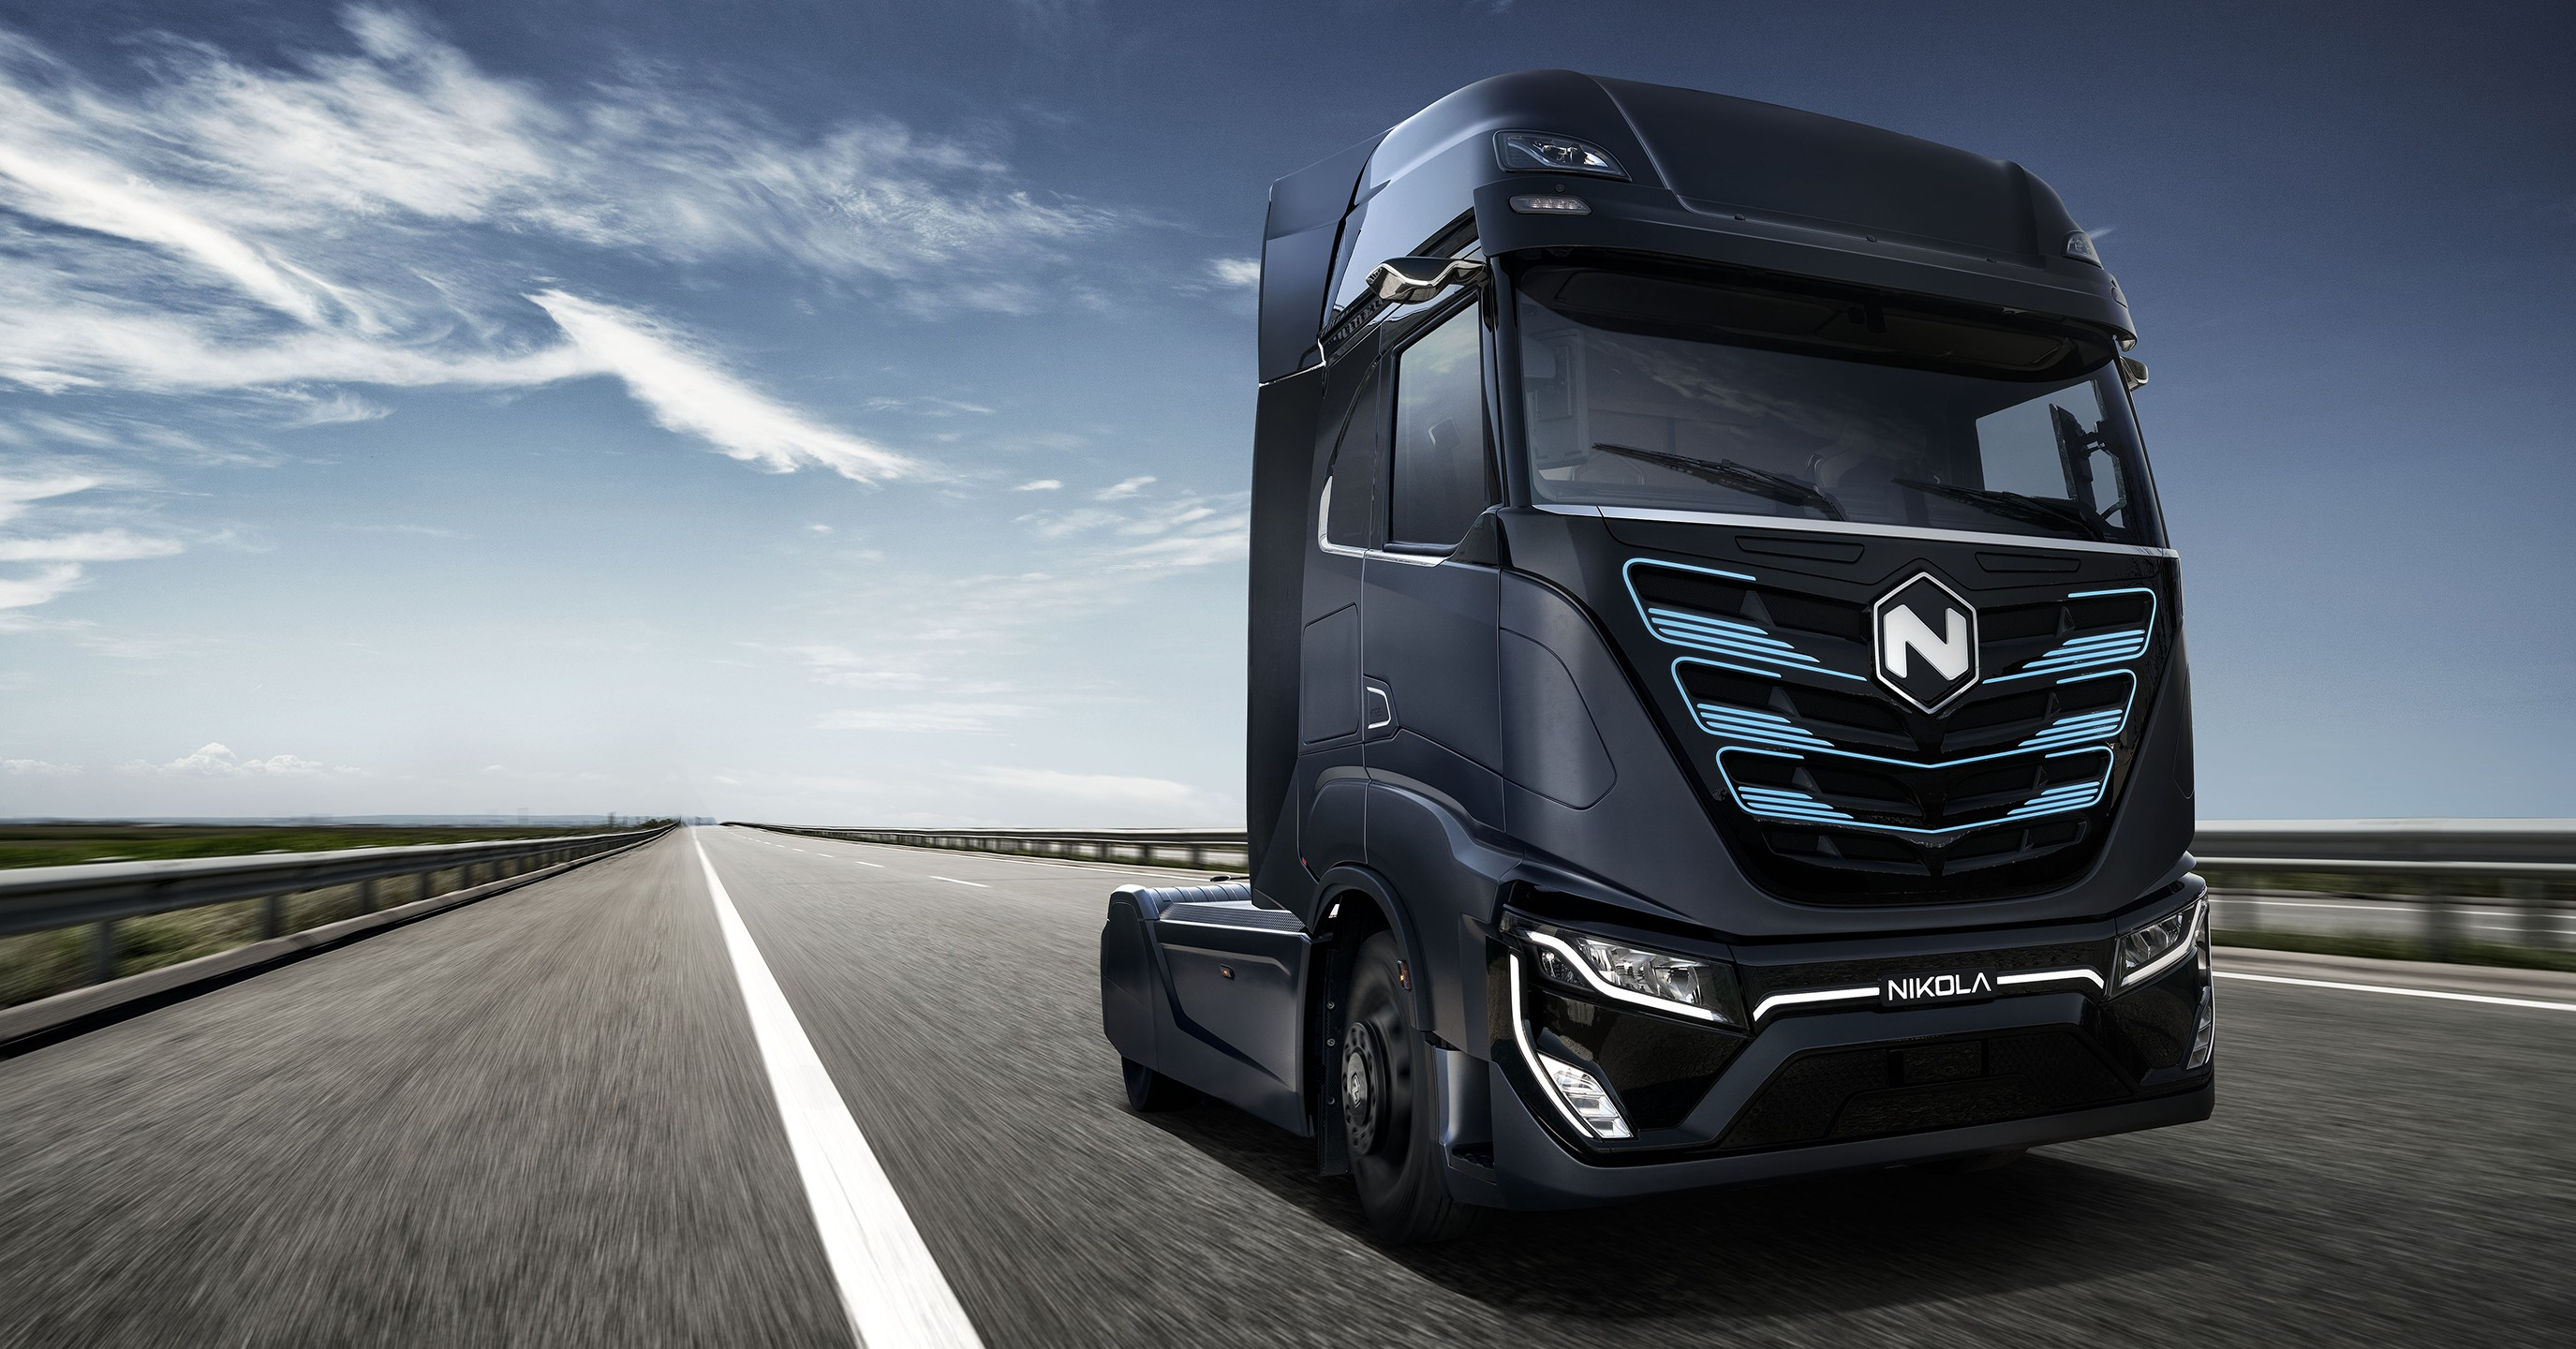 [Inclassable] Le topic des camions - Page 7 1000-hp-nikola-electric-trucks-to-move-trash-around-the-us-from-2023_1